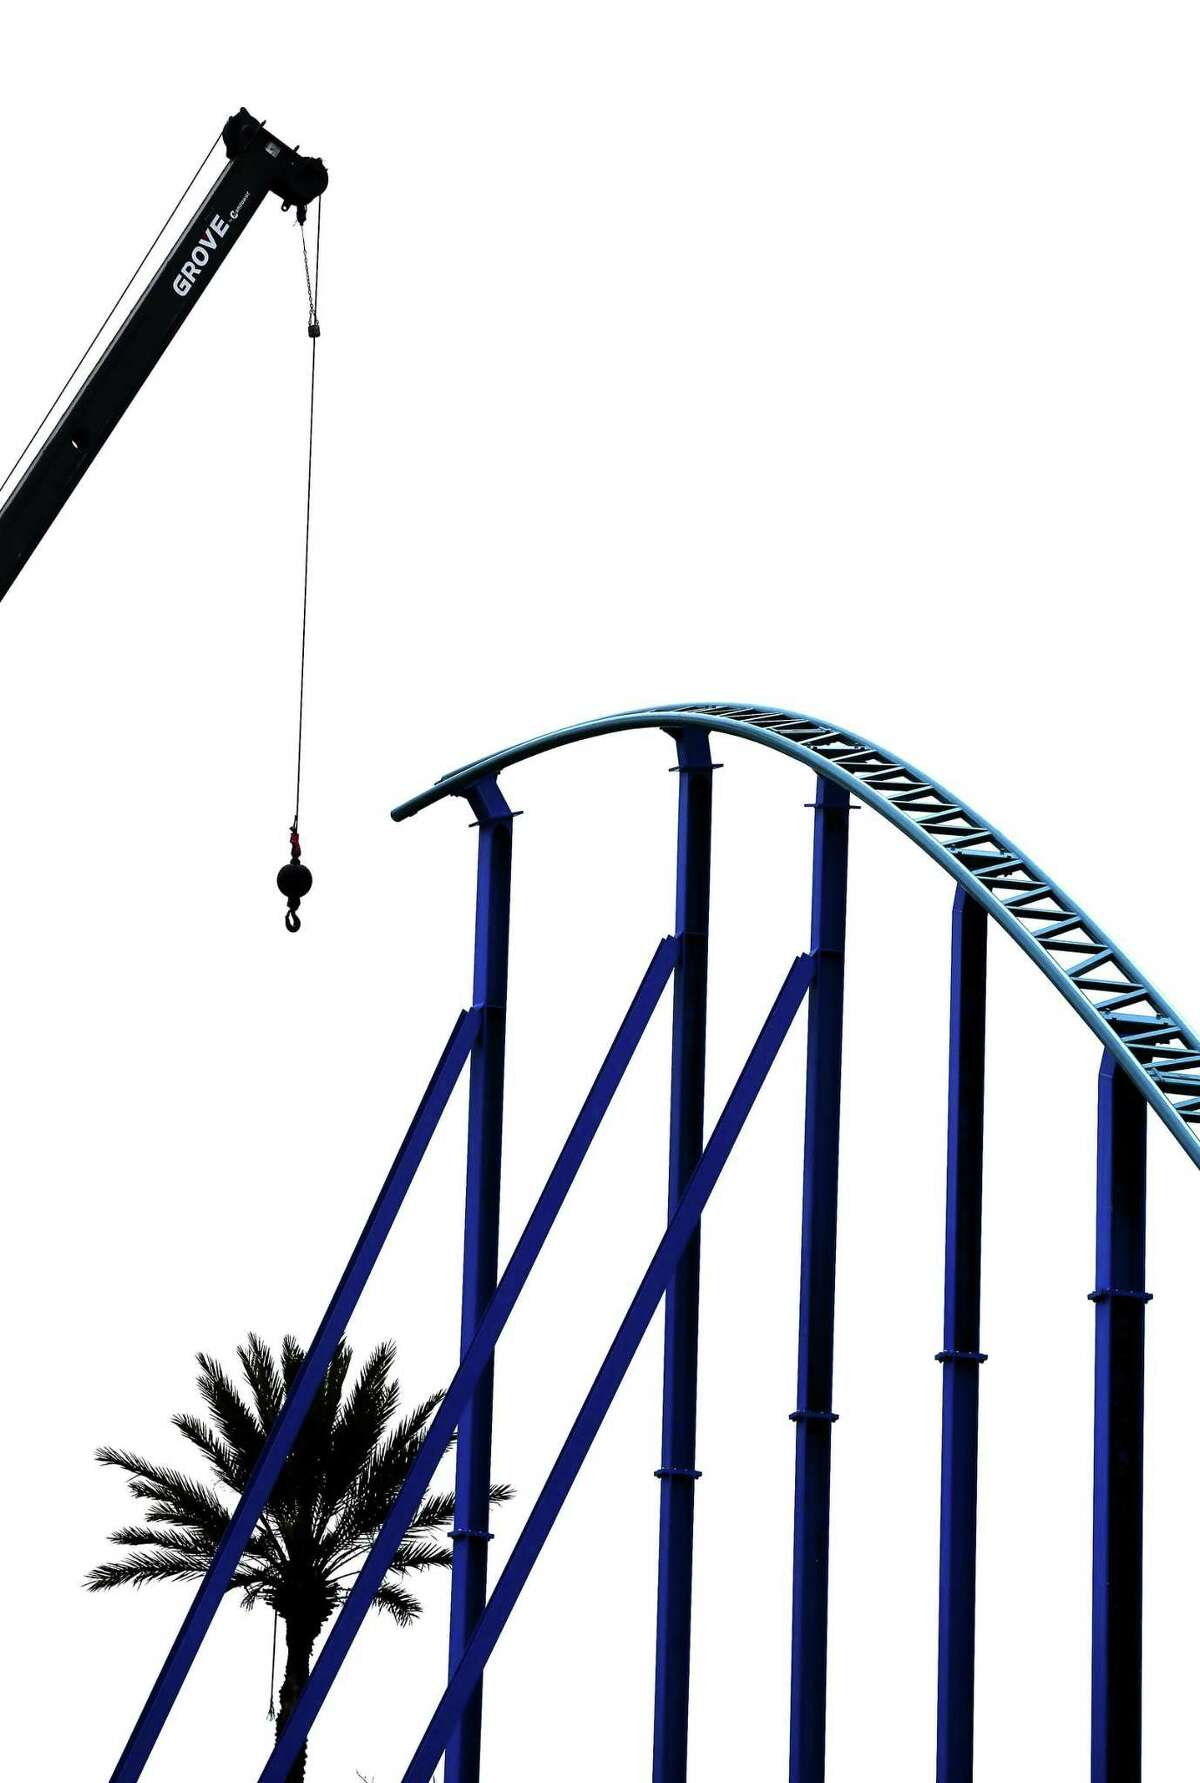 The highest point of SeaWorld's still-under-construction Wave Breaker roller coaster, which is intended to simulate marine mammal rescue missions, is seen Wednesday morning, March 22, 2017. The ride will be completed this summer but an opening date has not been announced yet.